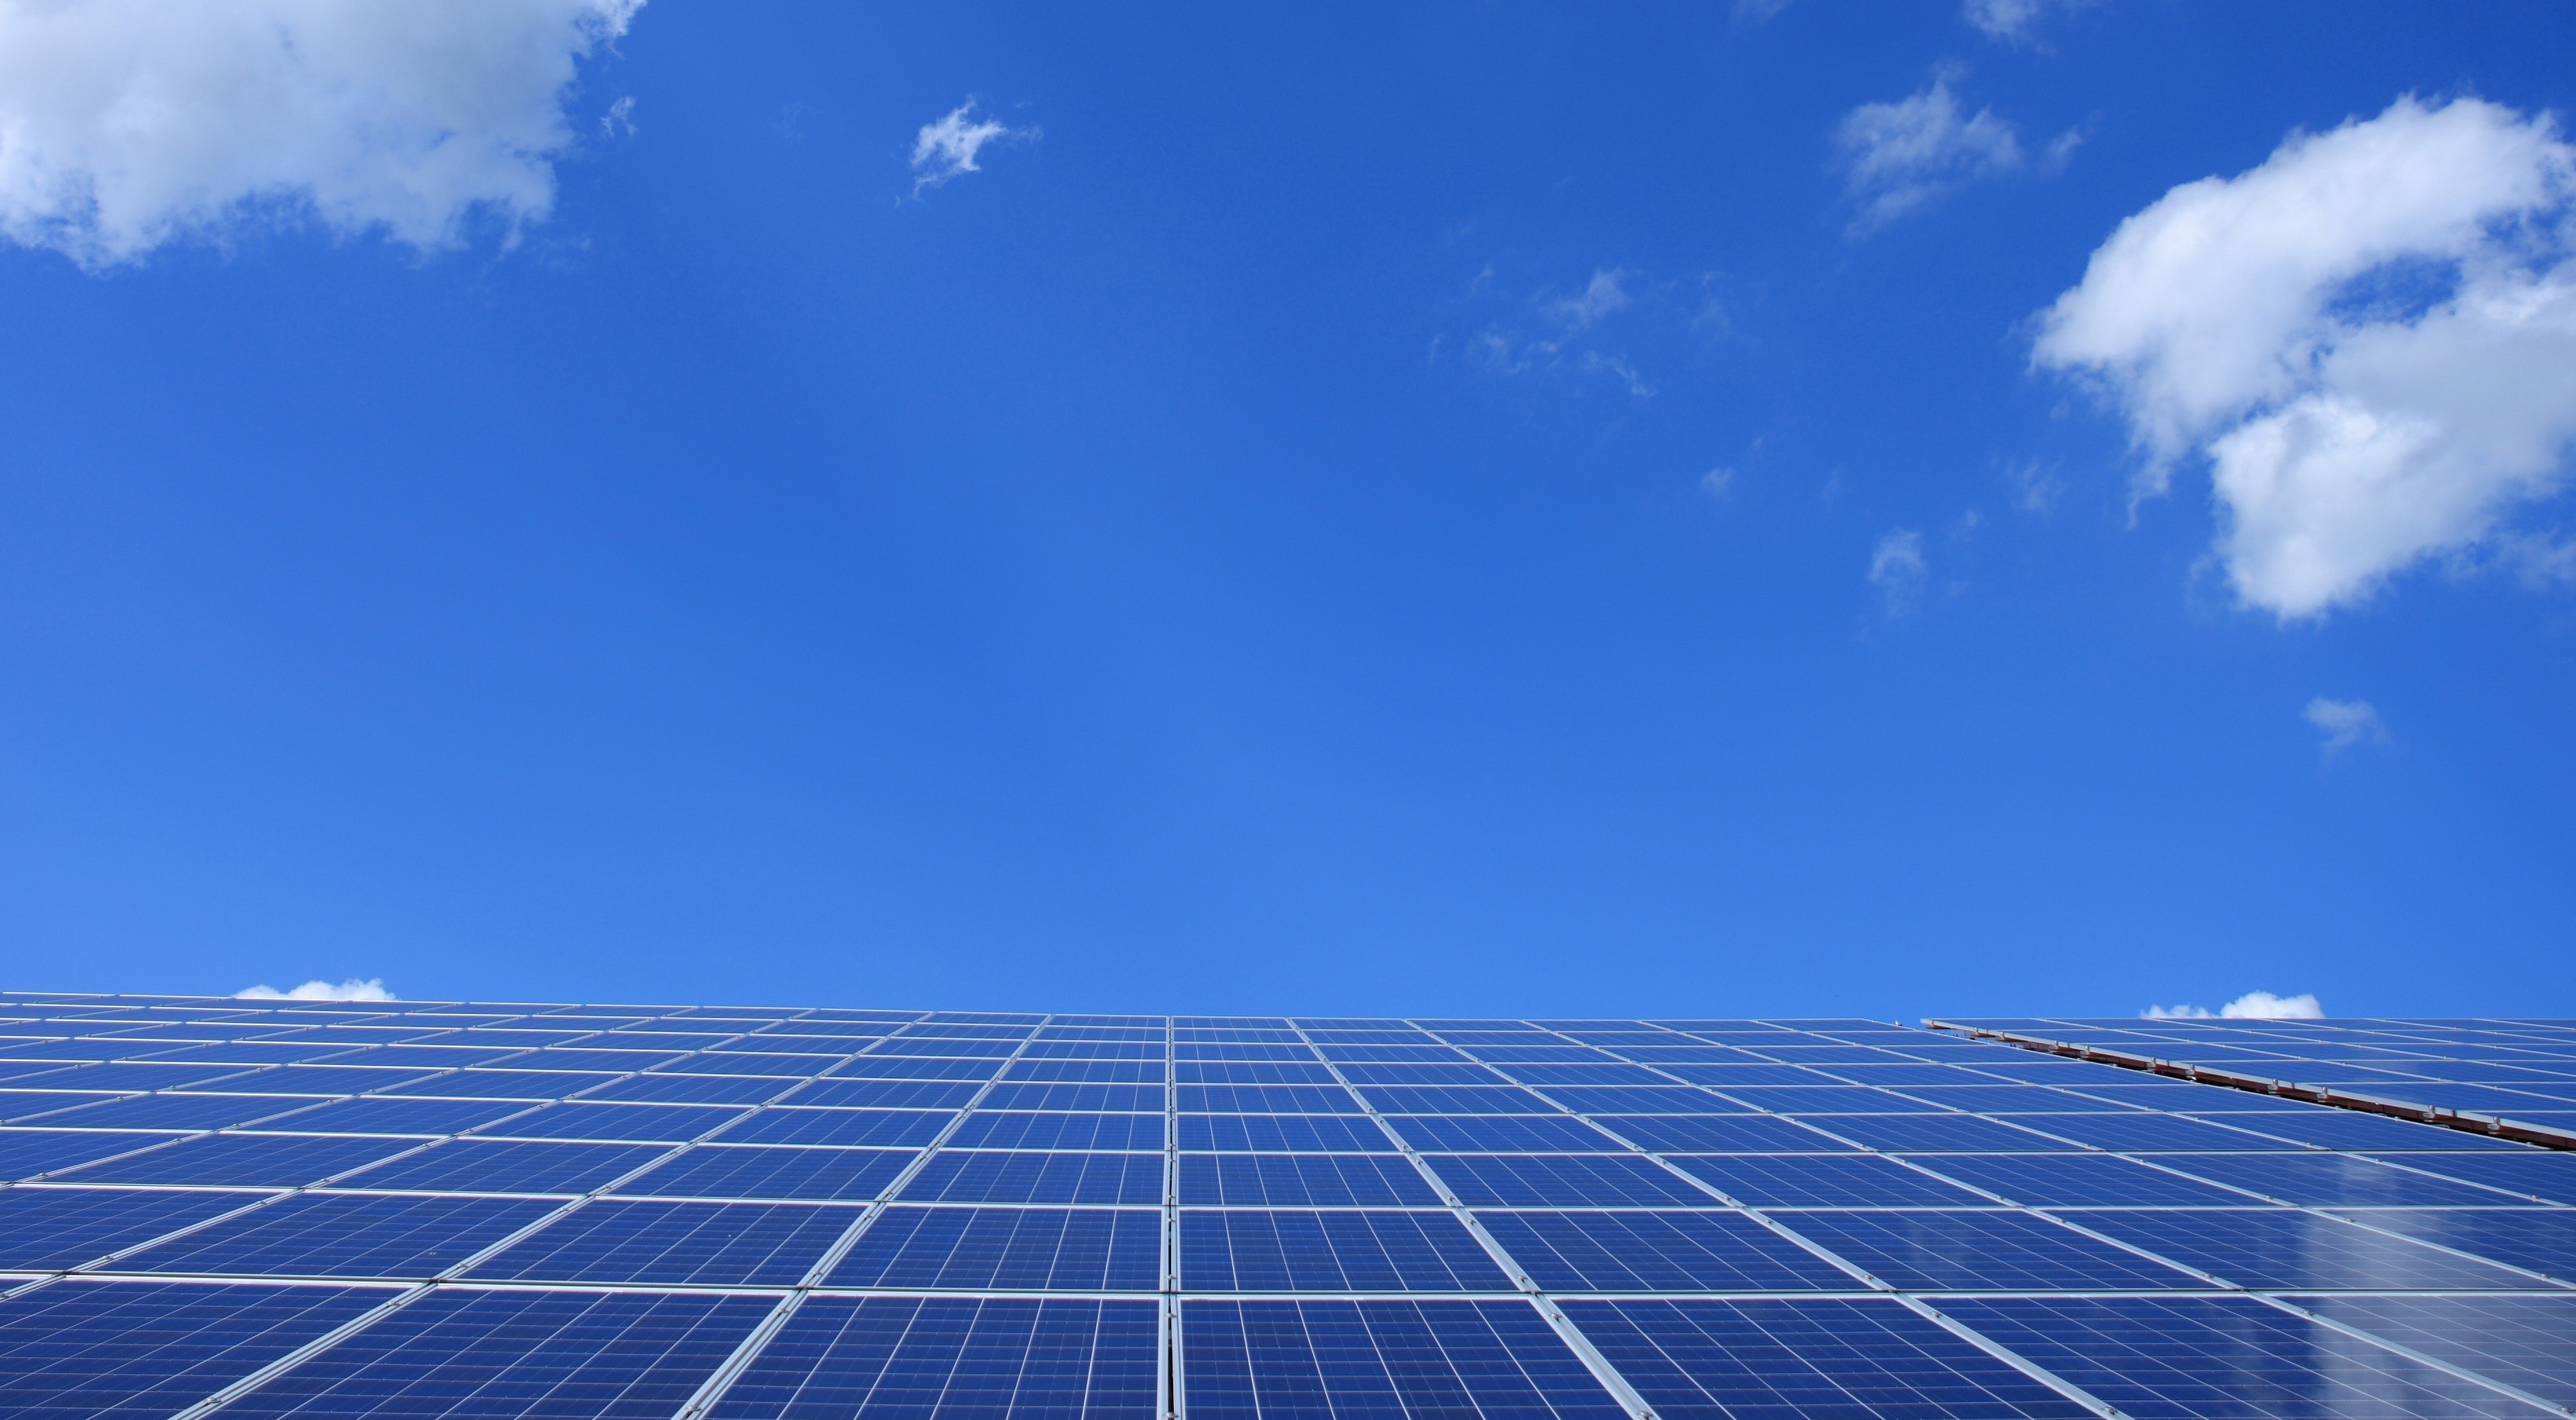 Solar panels from an angled view with a blue sky background